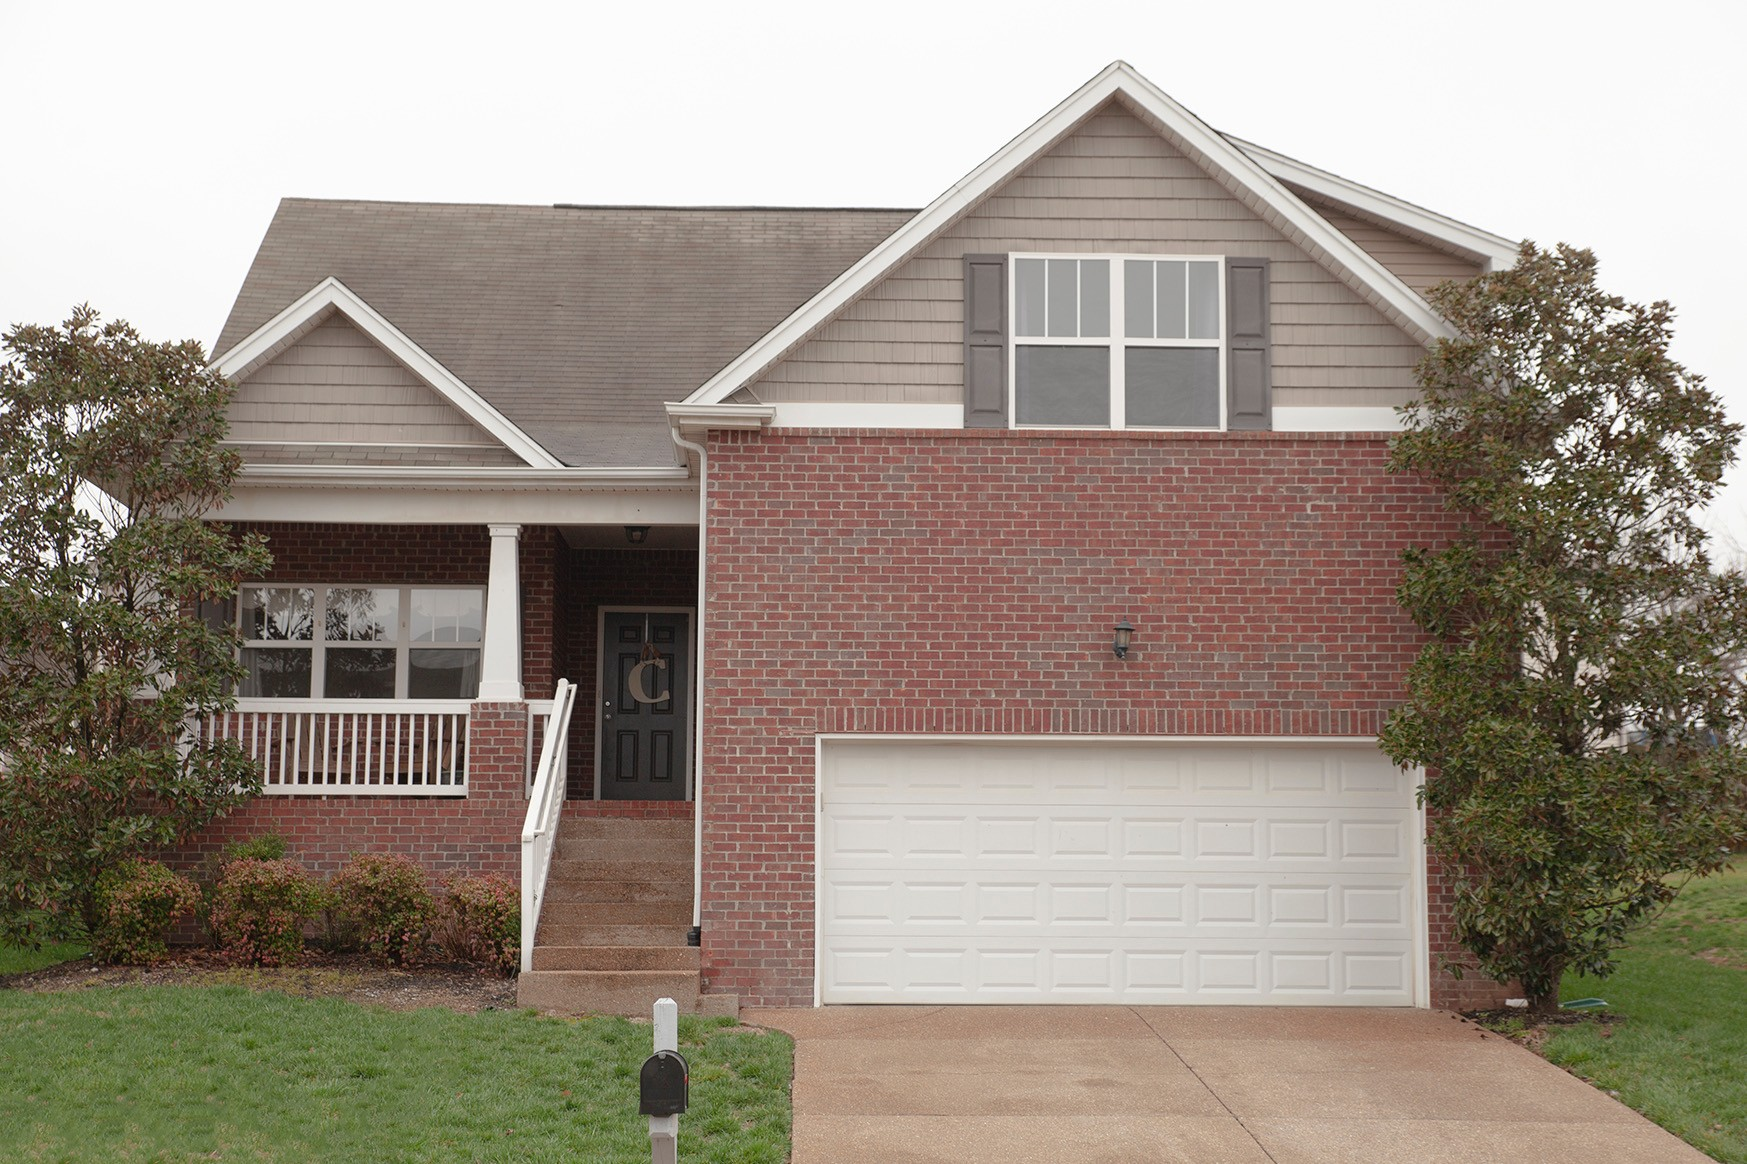 1494 Bern Dr, Spring Hill in Williamson County, T County, TN 37174 Home for Sale